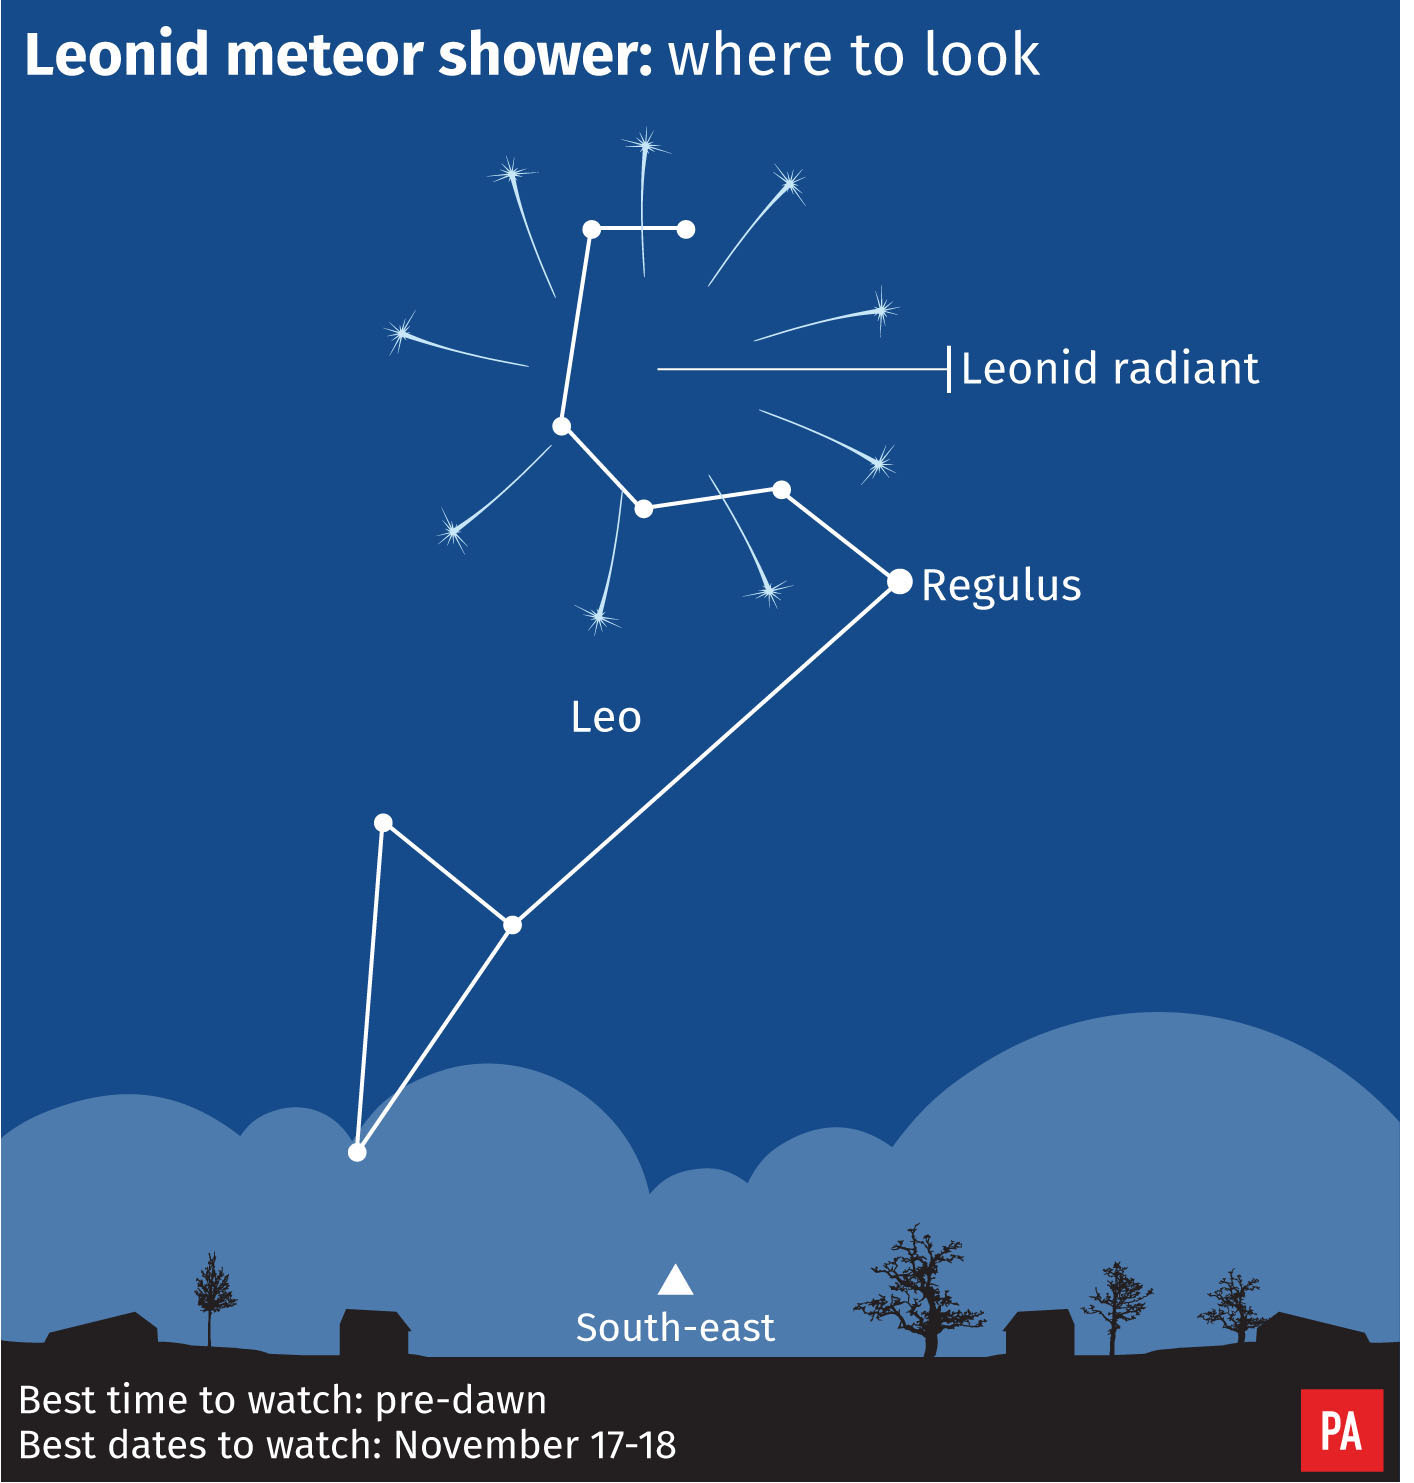 Look Up! The Leonid Meteor Shower Peaks This Weekend